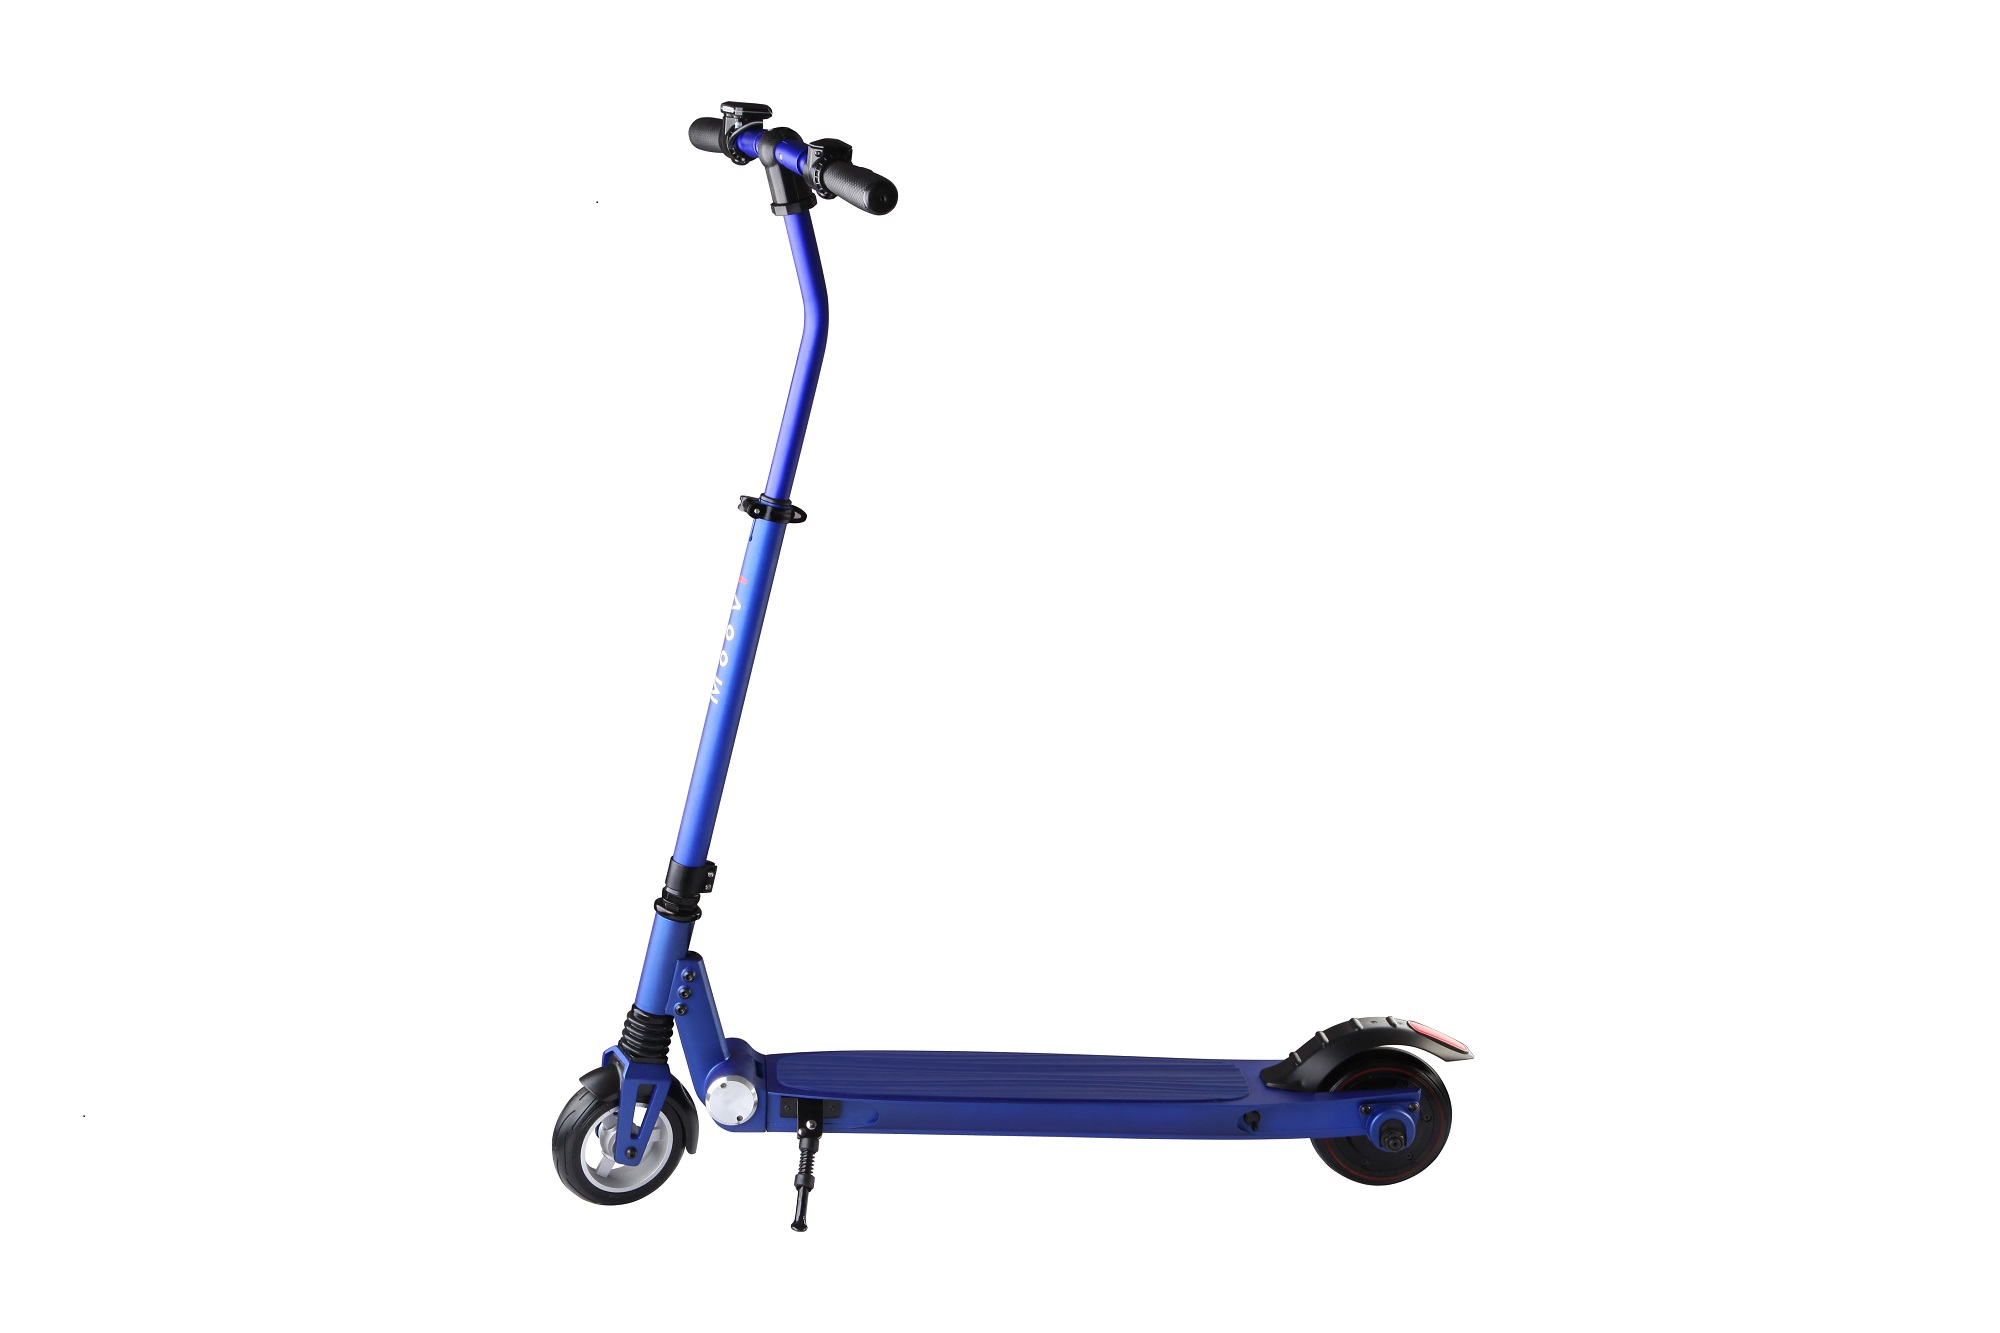 New Original Deisign Foldable Adult Electric Scooter with High Speed